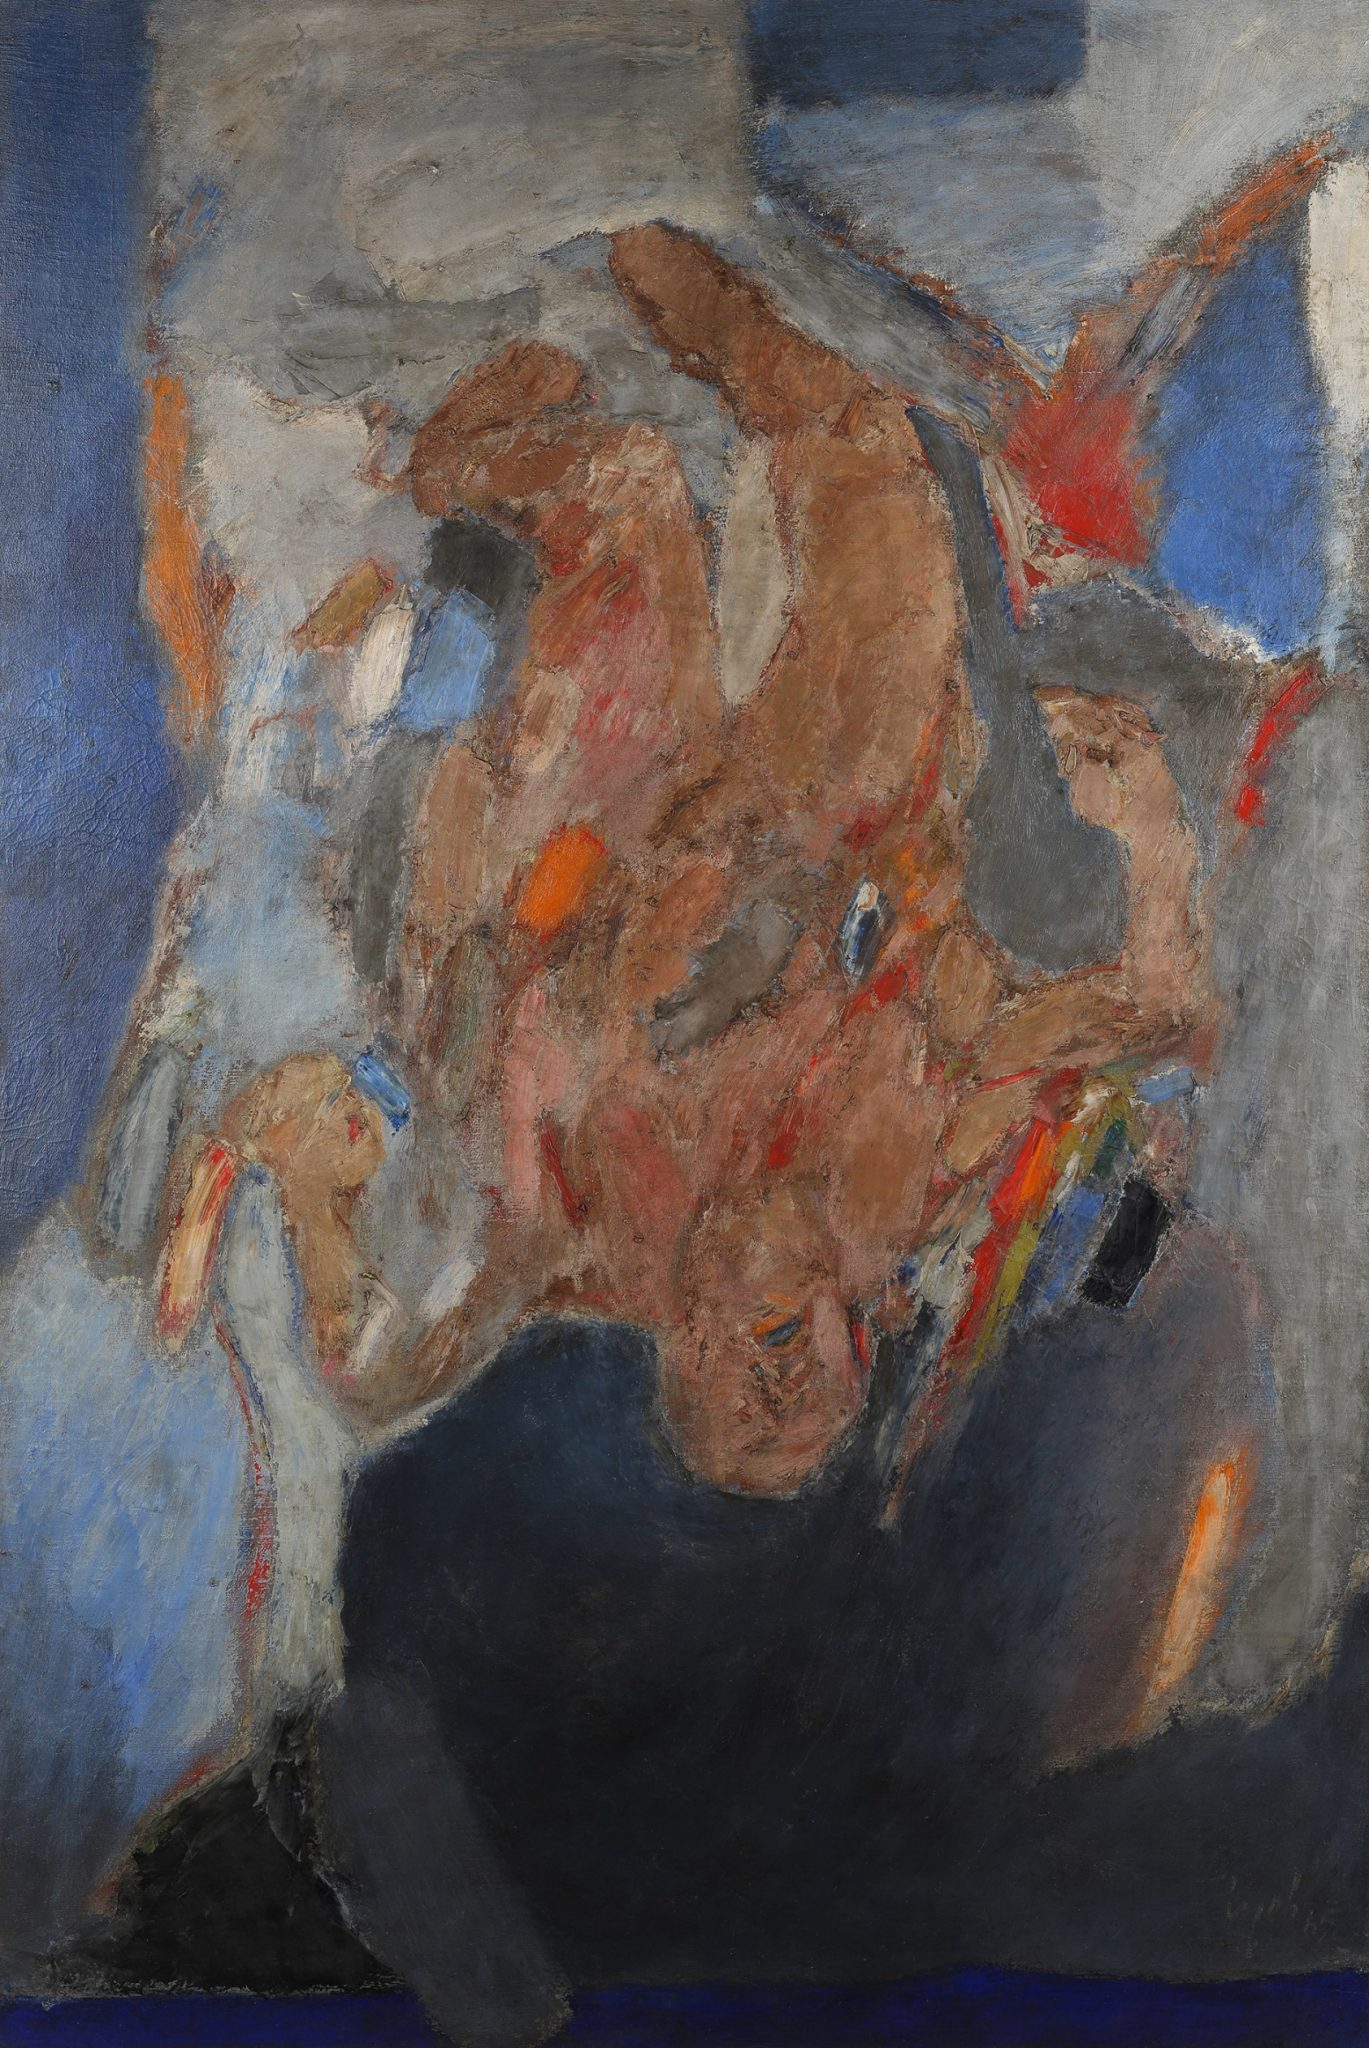 Lot 46 GÇô Tyeb MehtaGÇÖs Falling Figure, painted in 1965, led SaffronartGÇÖs Evening Sale at INR 6 crores (USD 909,091)